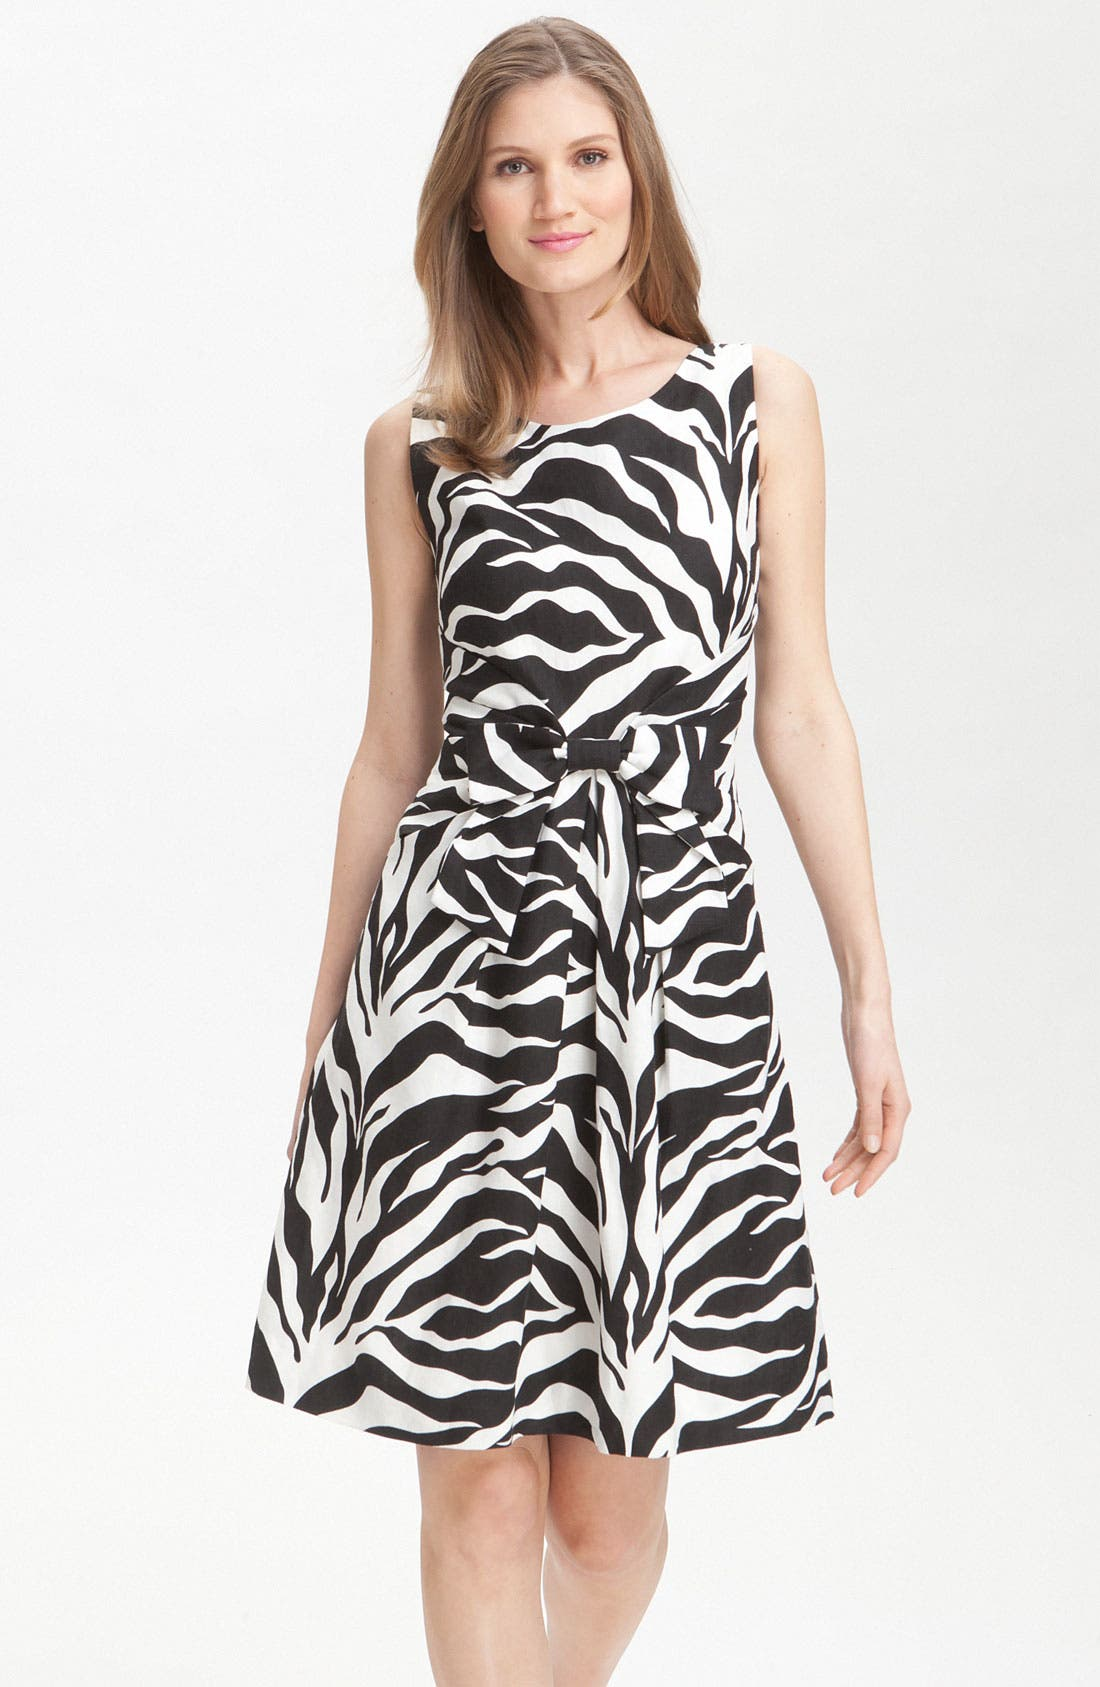 Main Image - kate spade new york 'jillian' animal print dress